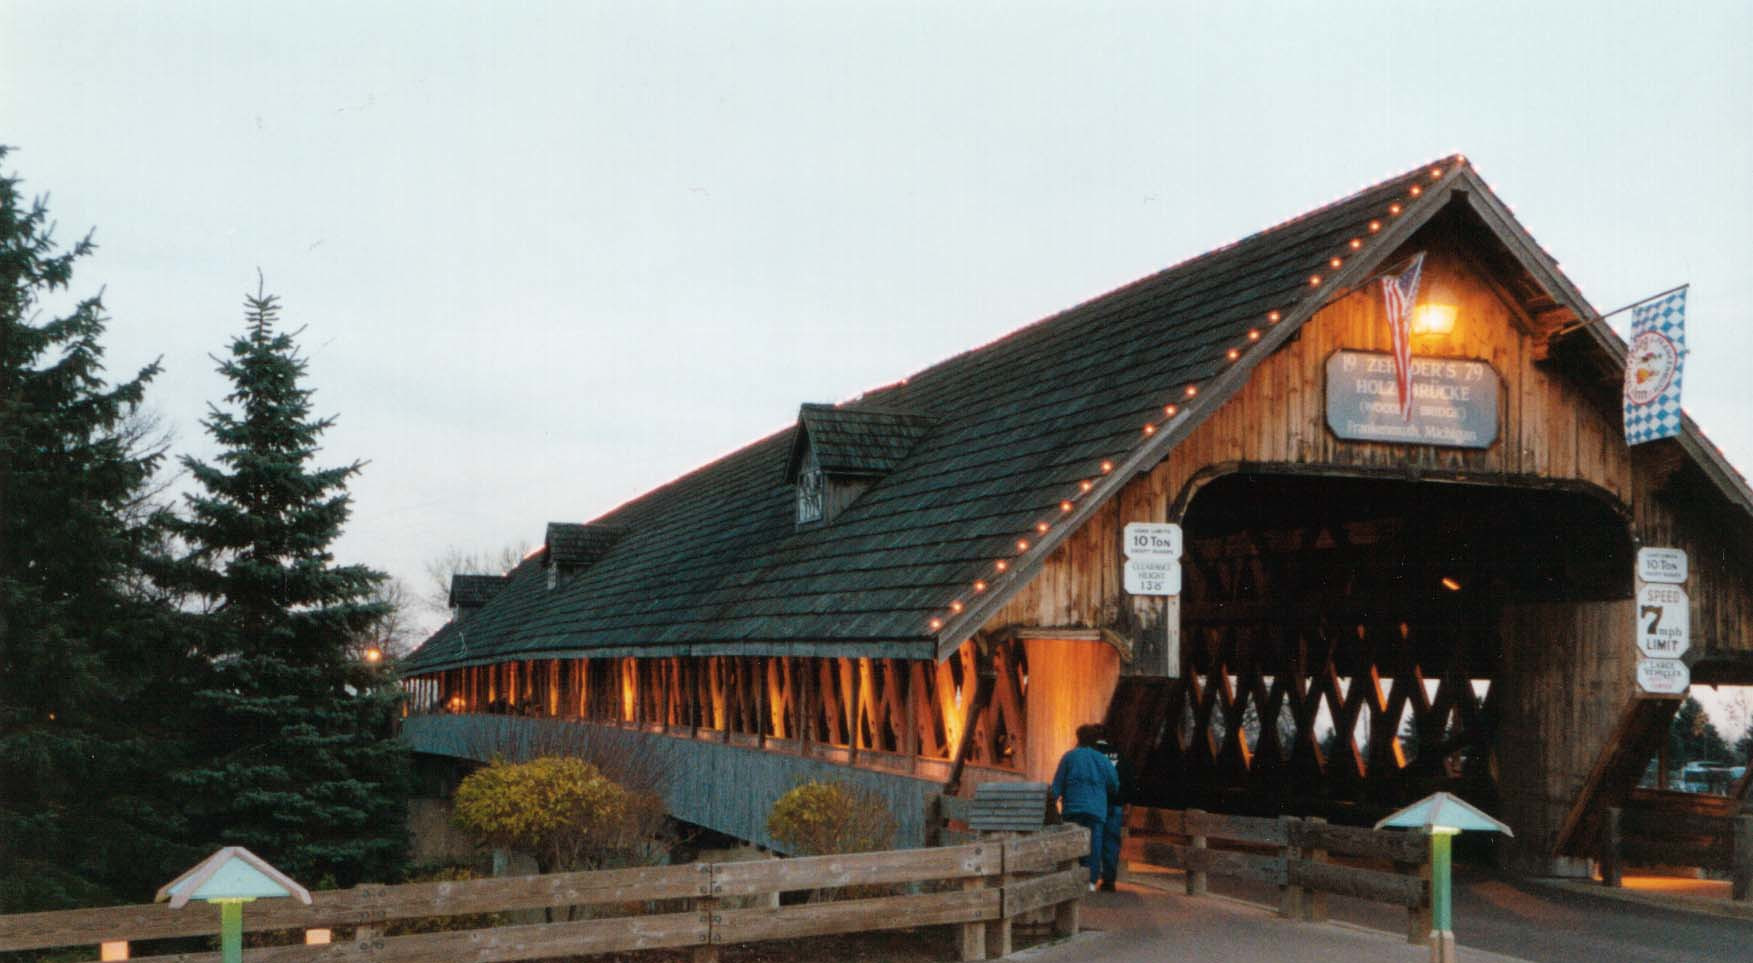 The Covered Bridge in Frankenmuth, MI